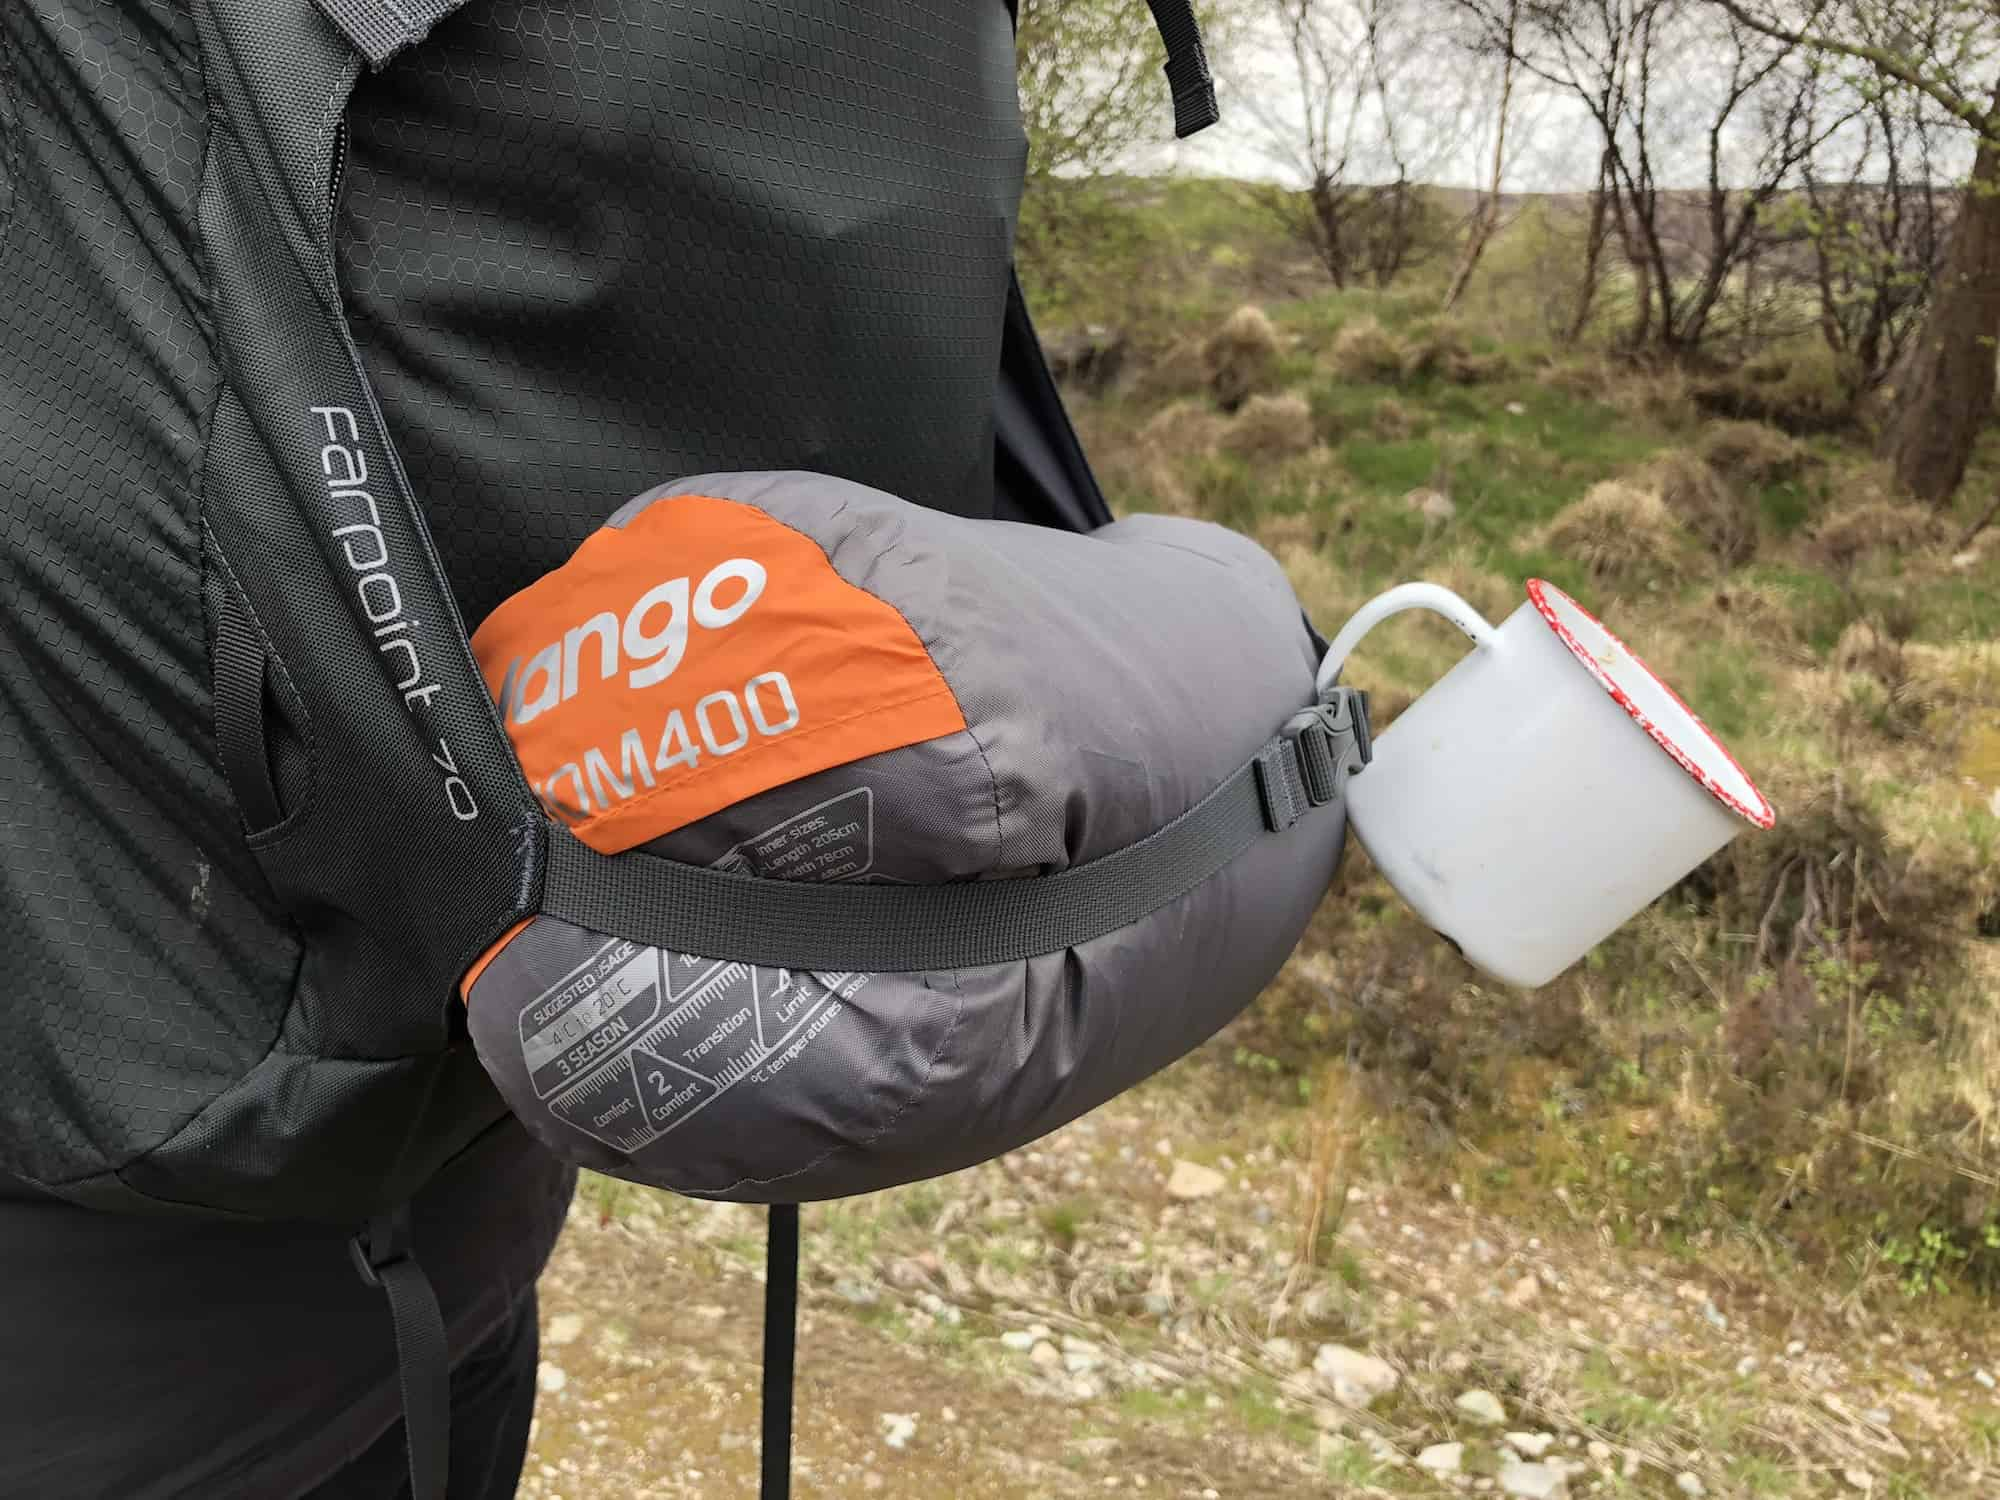 64db81f2823 The Venom 400 is pretty lightweight coming in at only 950g thanks to the  down filling. Similar temperature rated synthetic sleeping bags would be  twice the ...